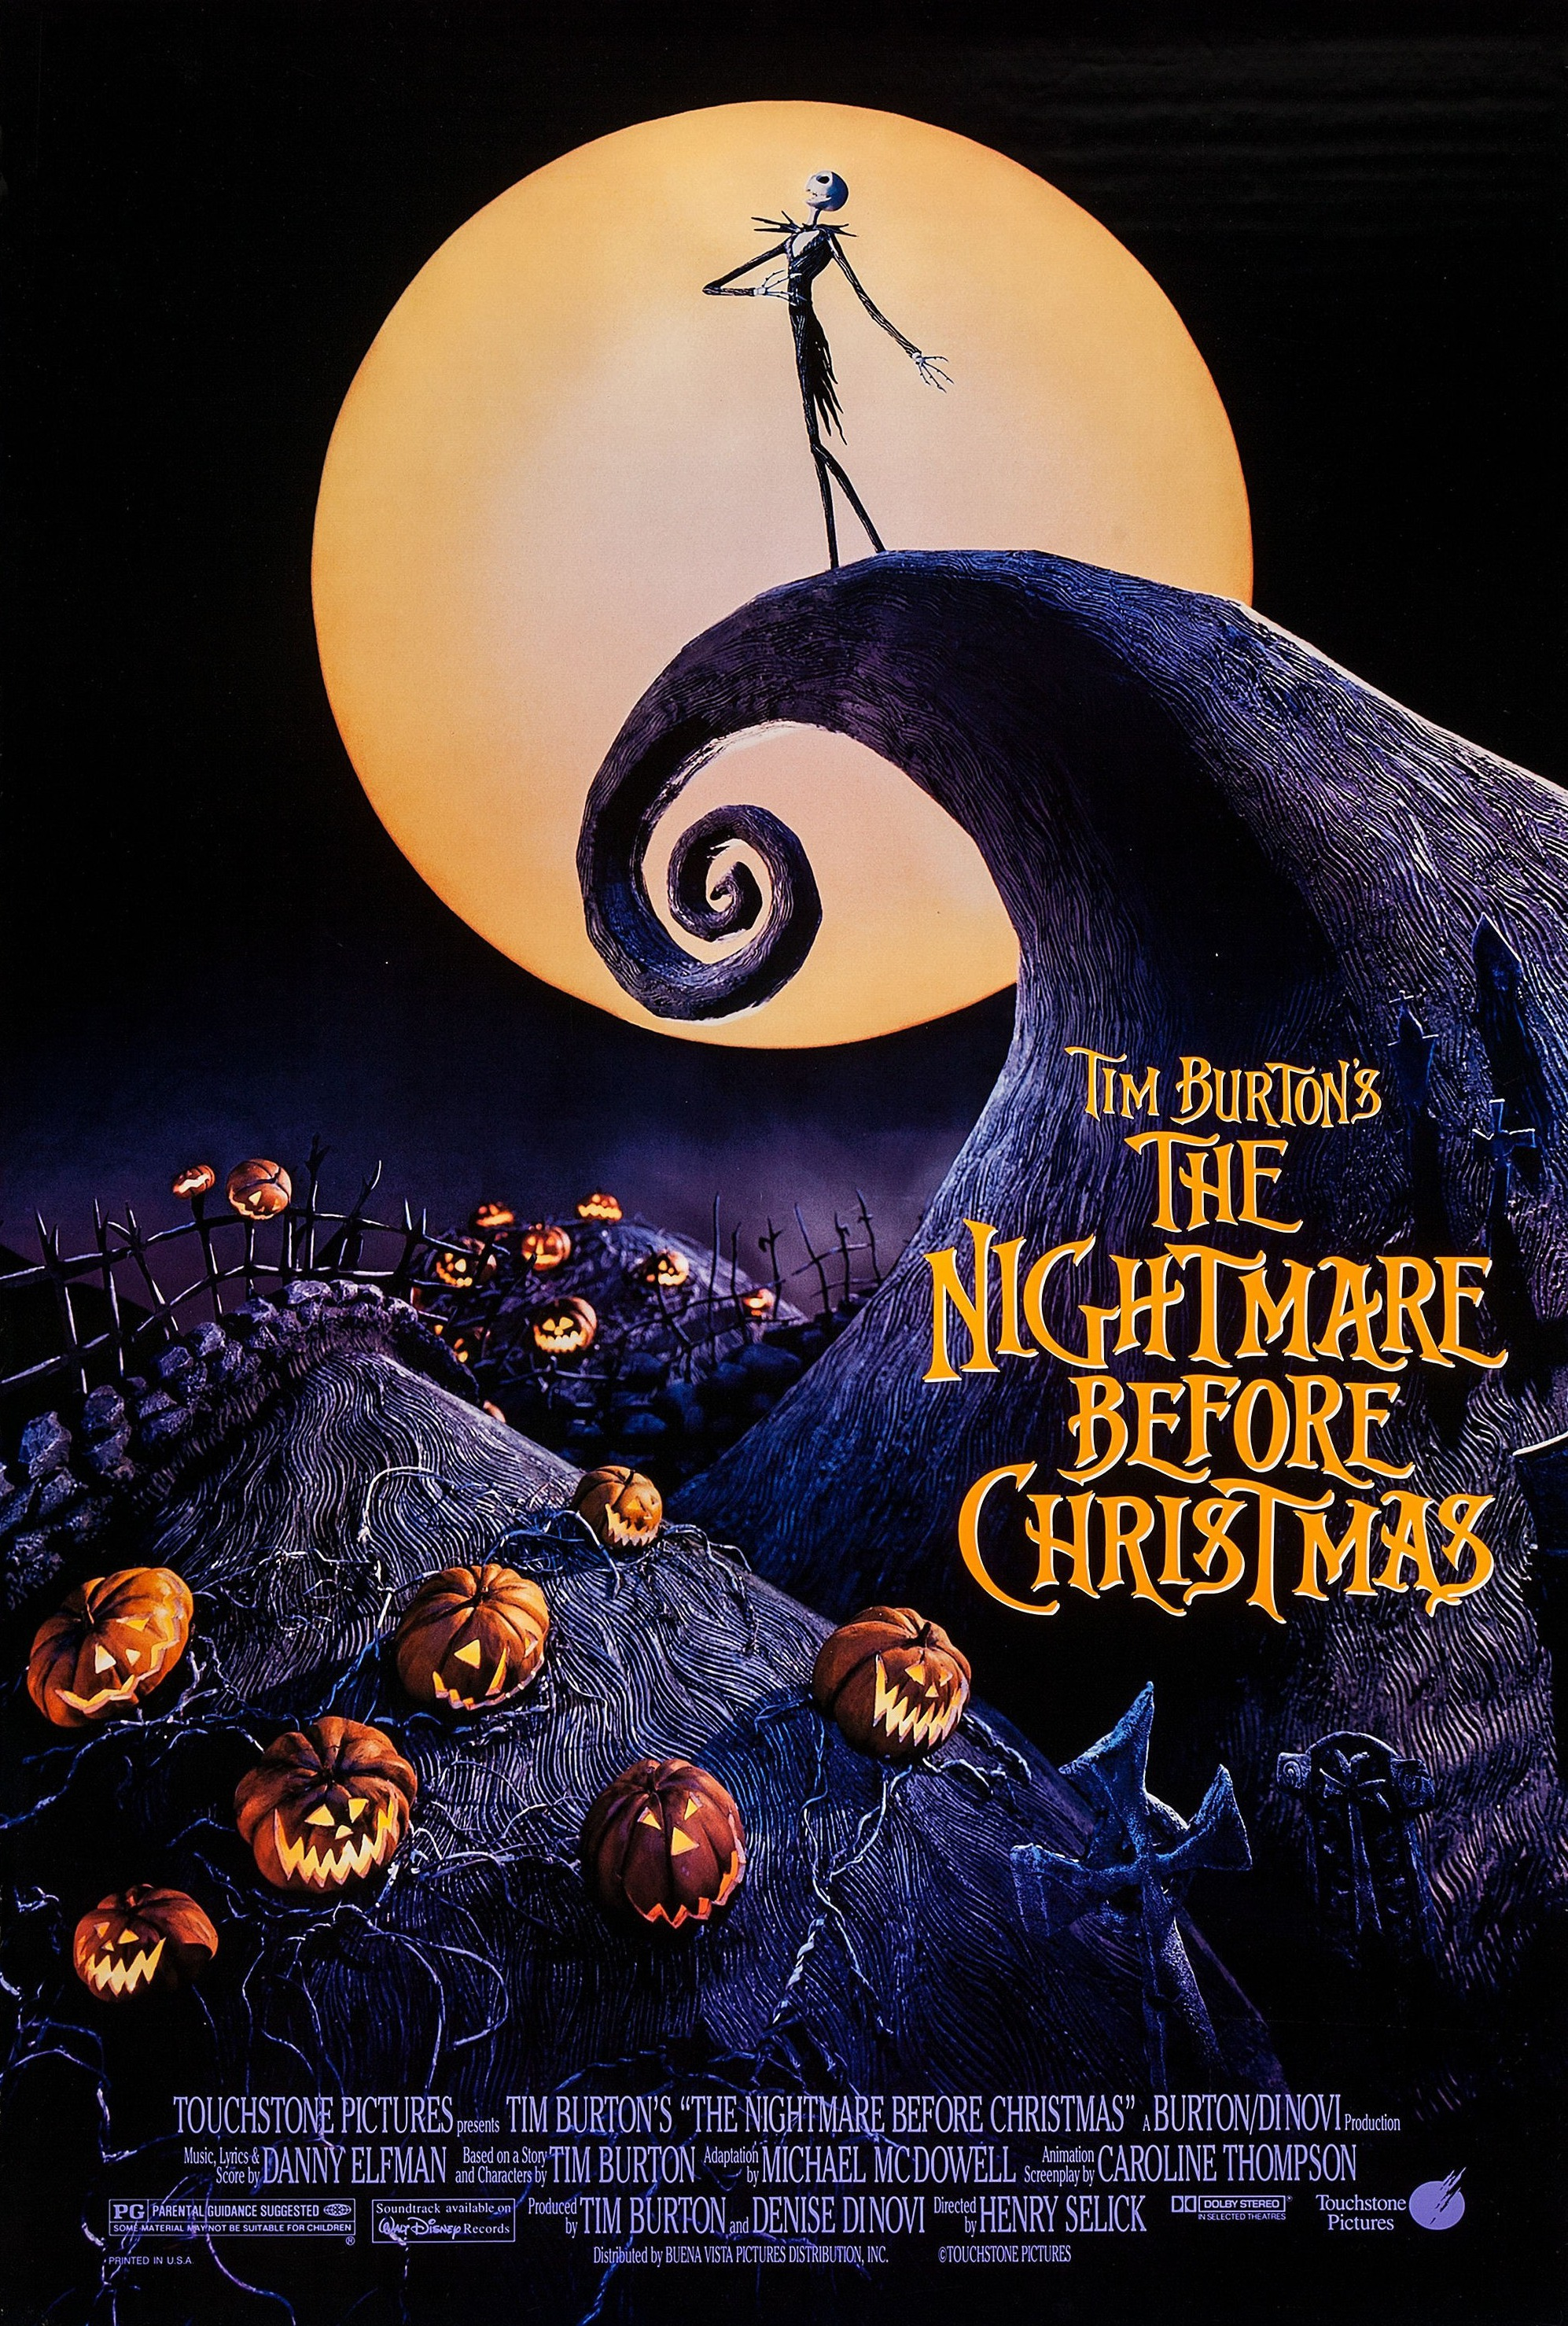 The Nightmare Before Christmas | Disney Wiki | FANDOM powered by Wikia